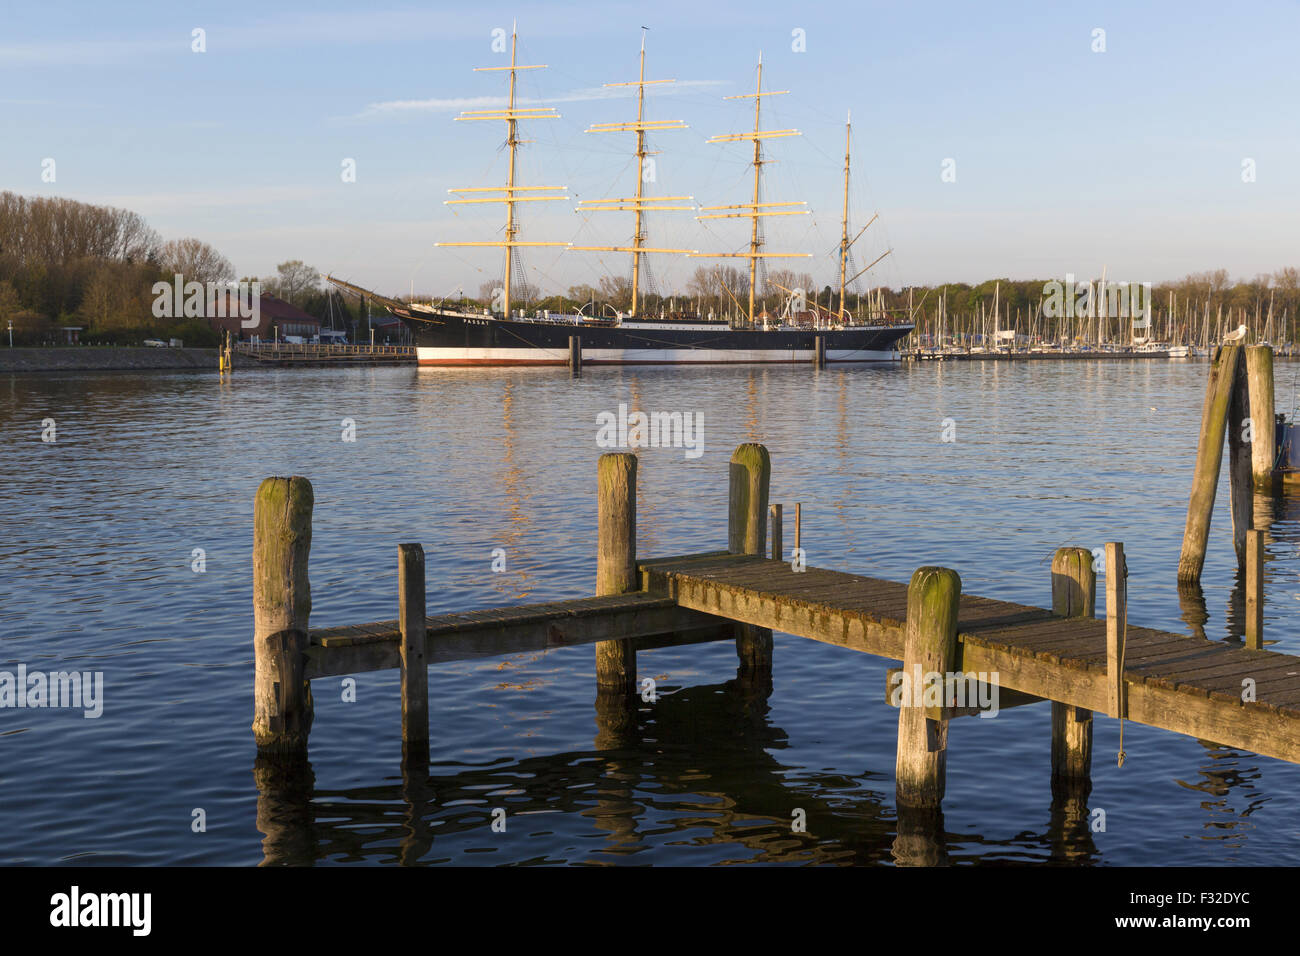 Jetty and 'Passat' four-masted steel barque, Travemunde, Lubeck, Schleswig-Holstein, Germany, May - Stock Image